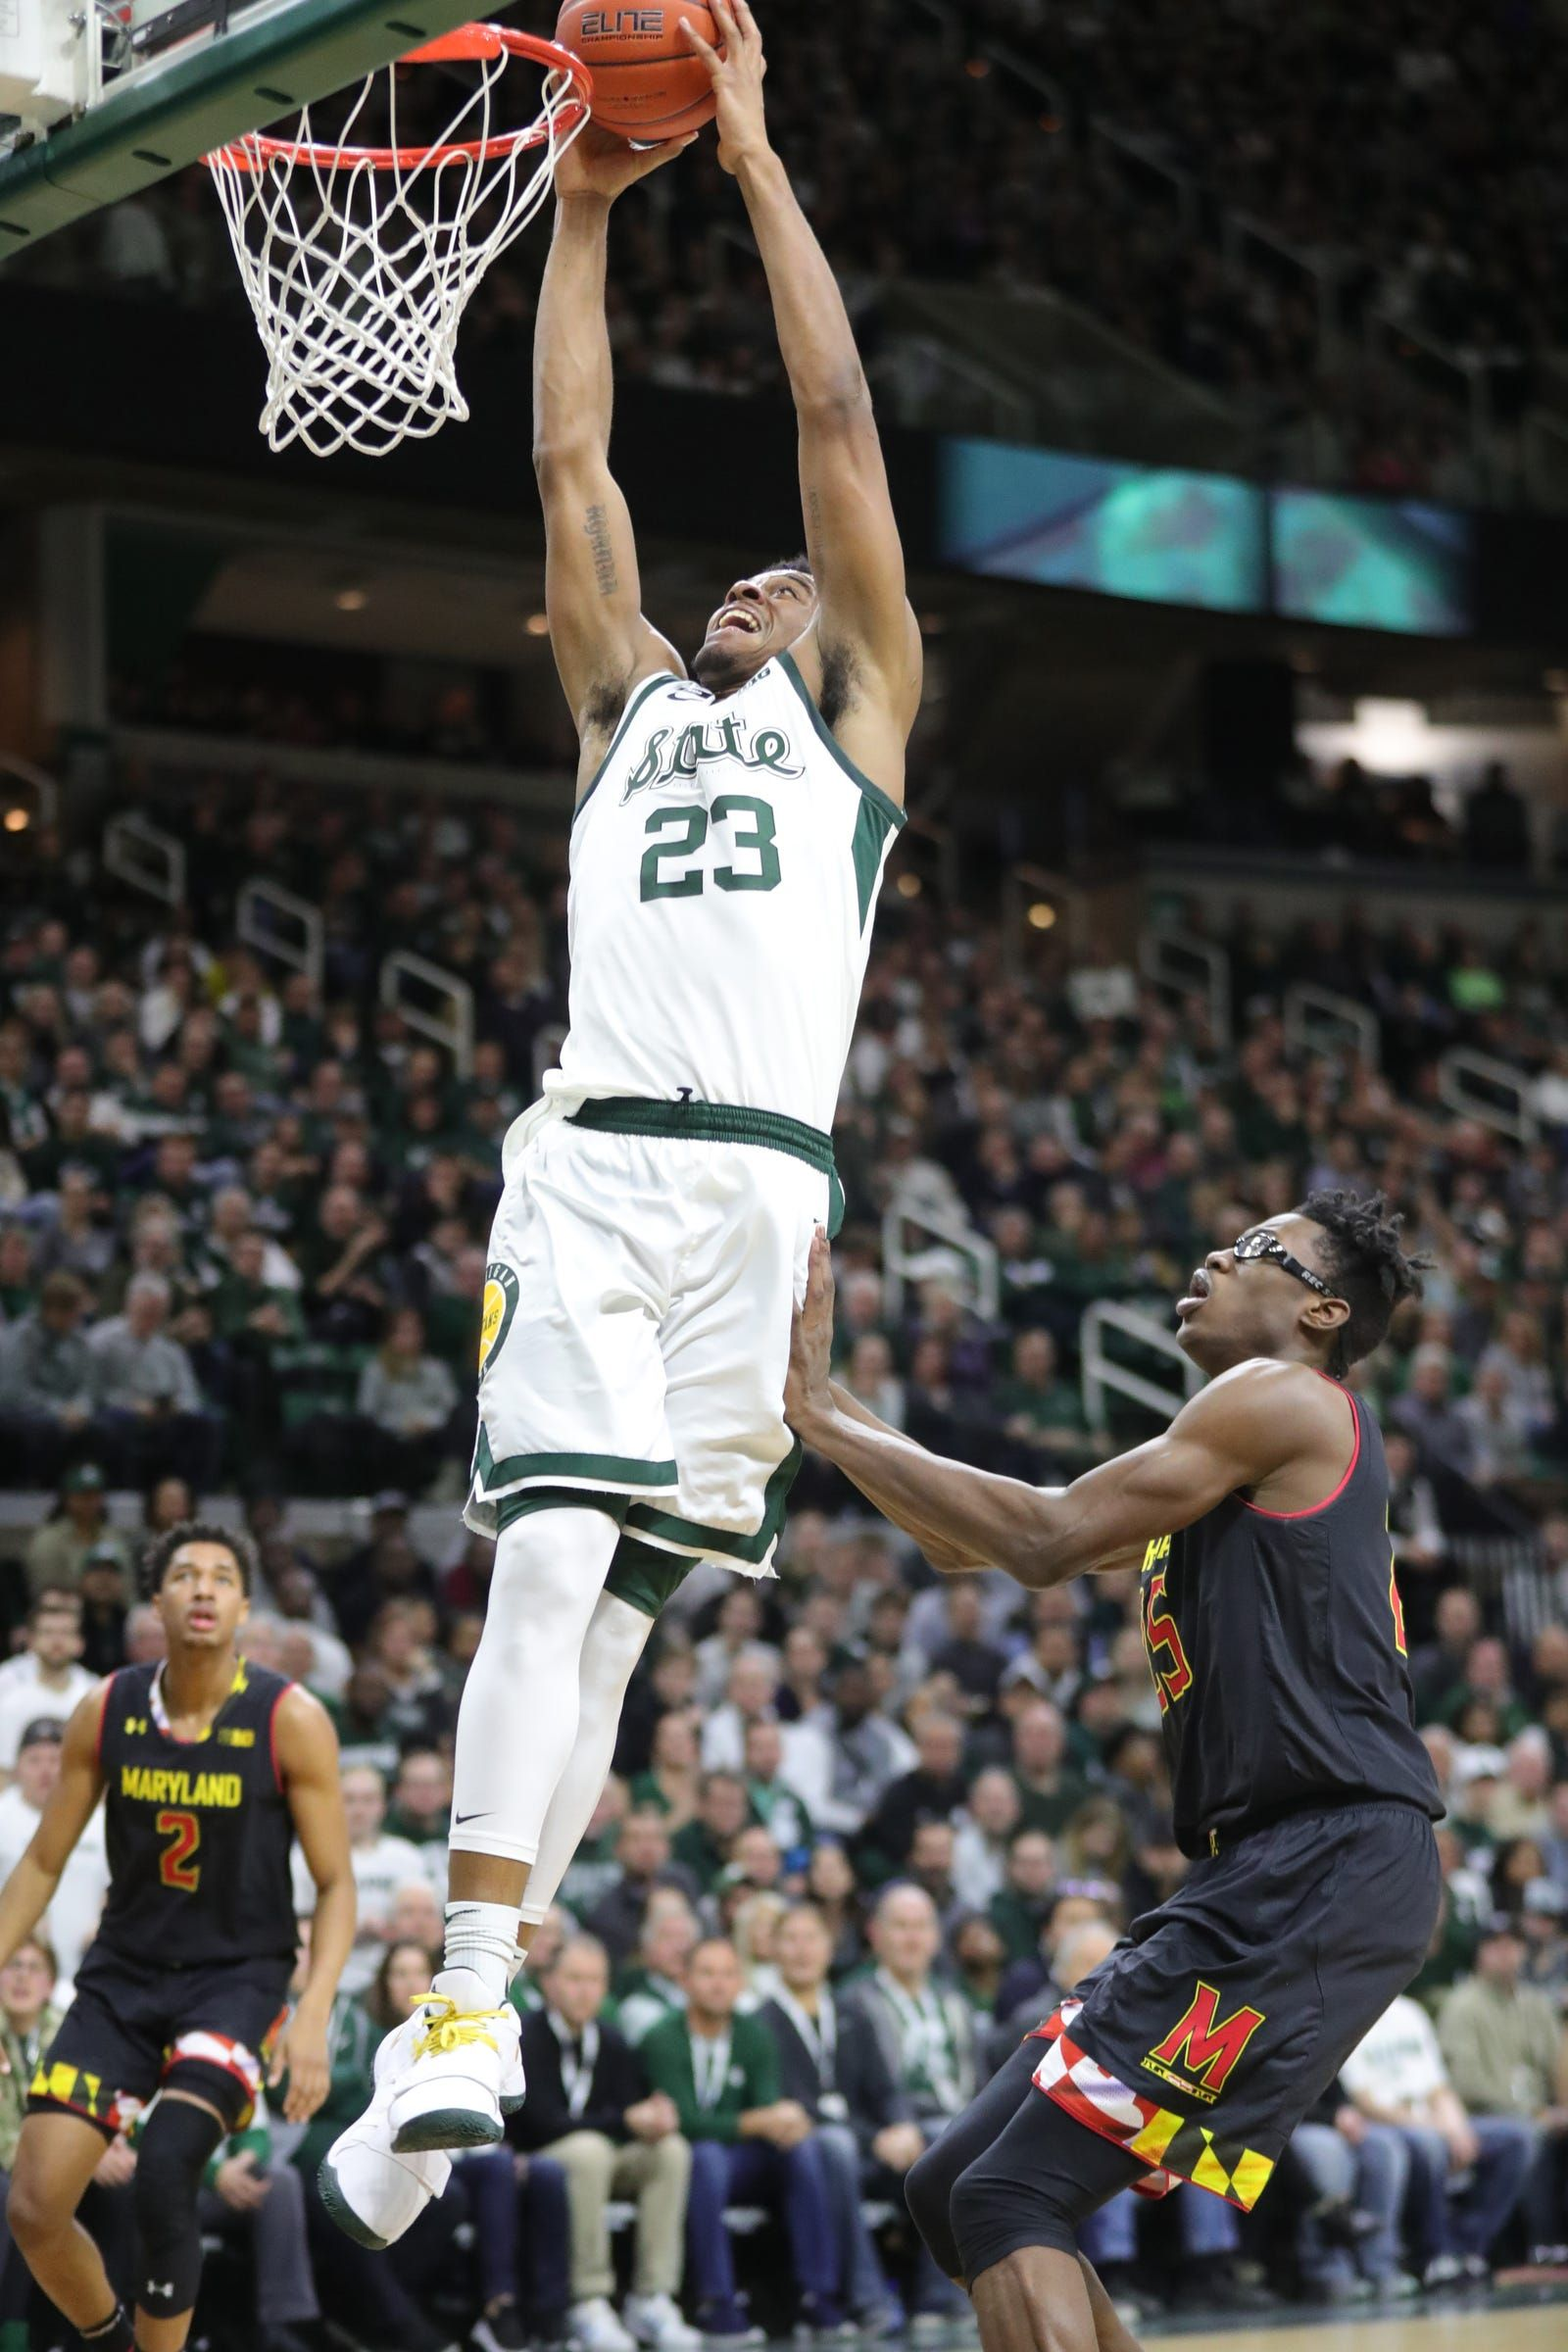 The 2020 Ncaa Tournament That Could Have Been A Sweet 16 For Michigan State Basketball In 2020 Michigan State Basketball Ncaa Tournament Ncaa